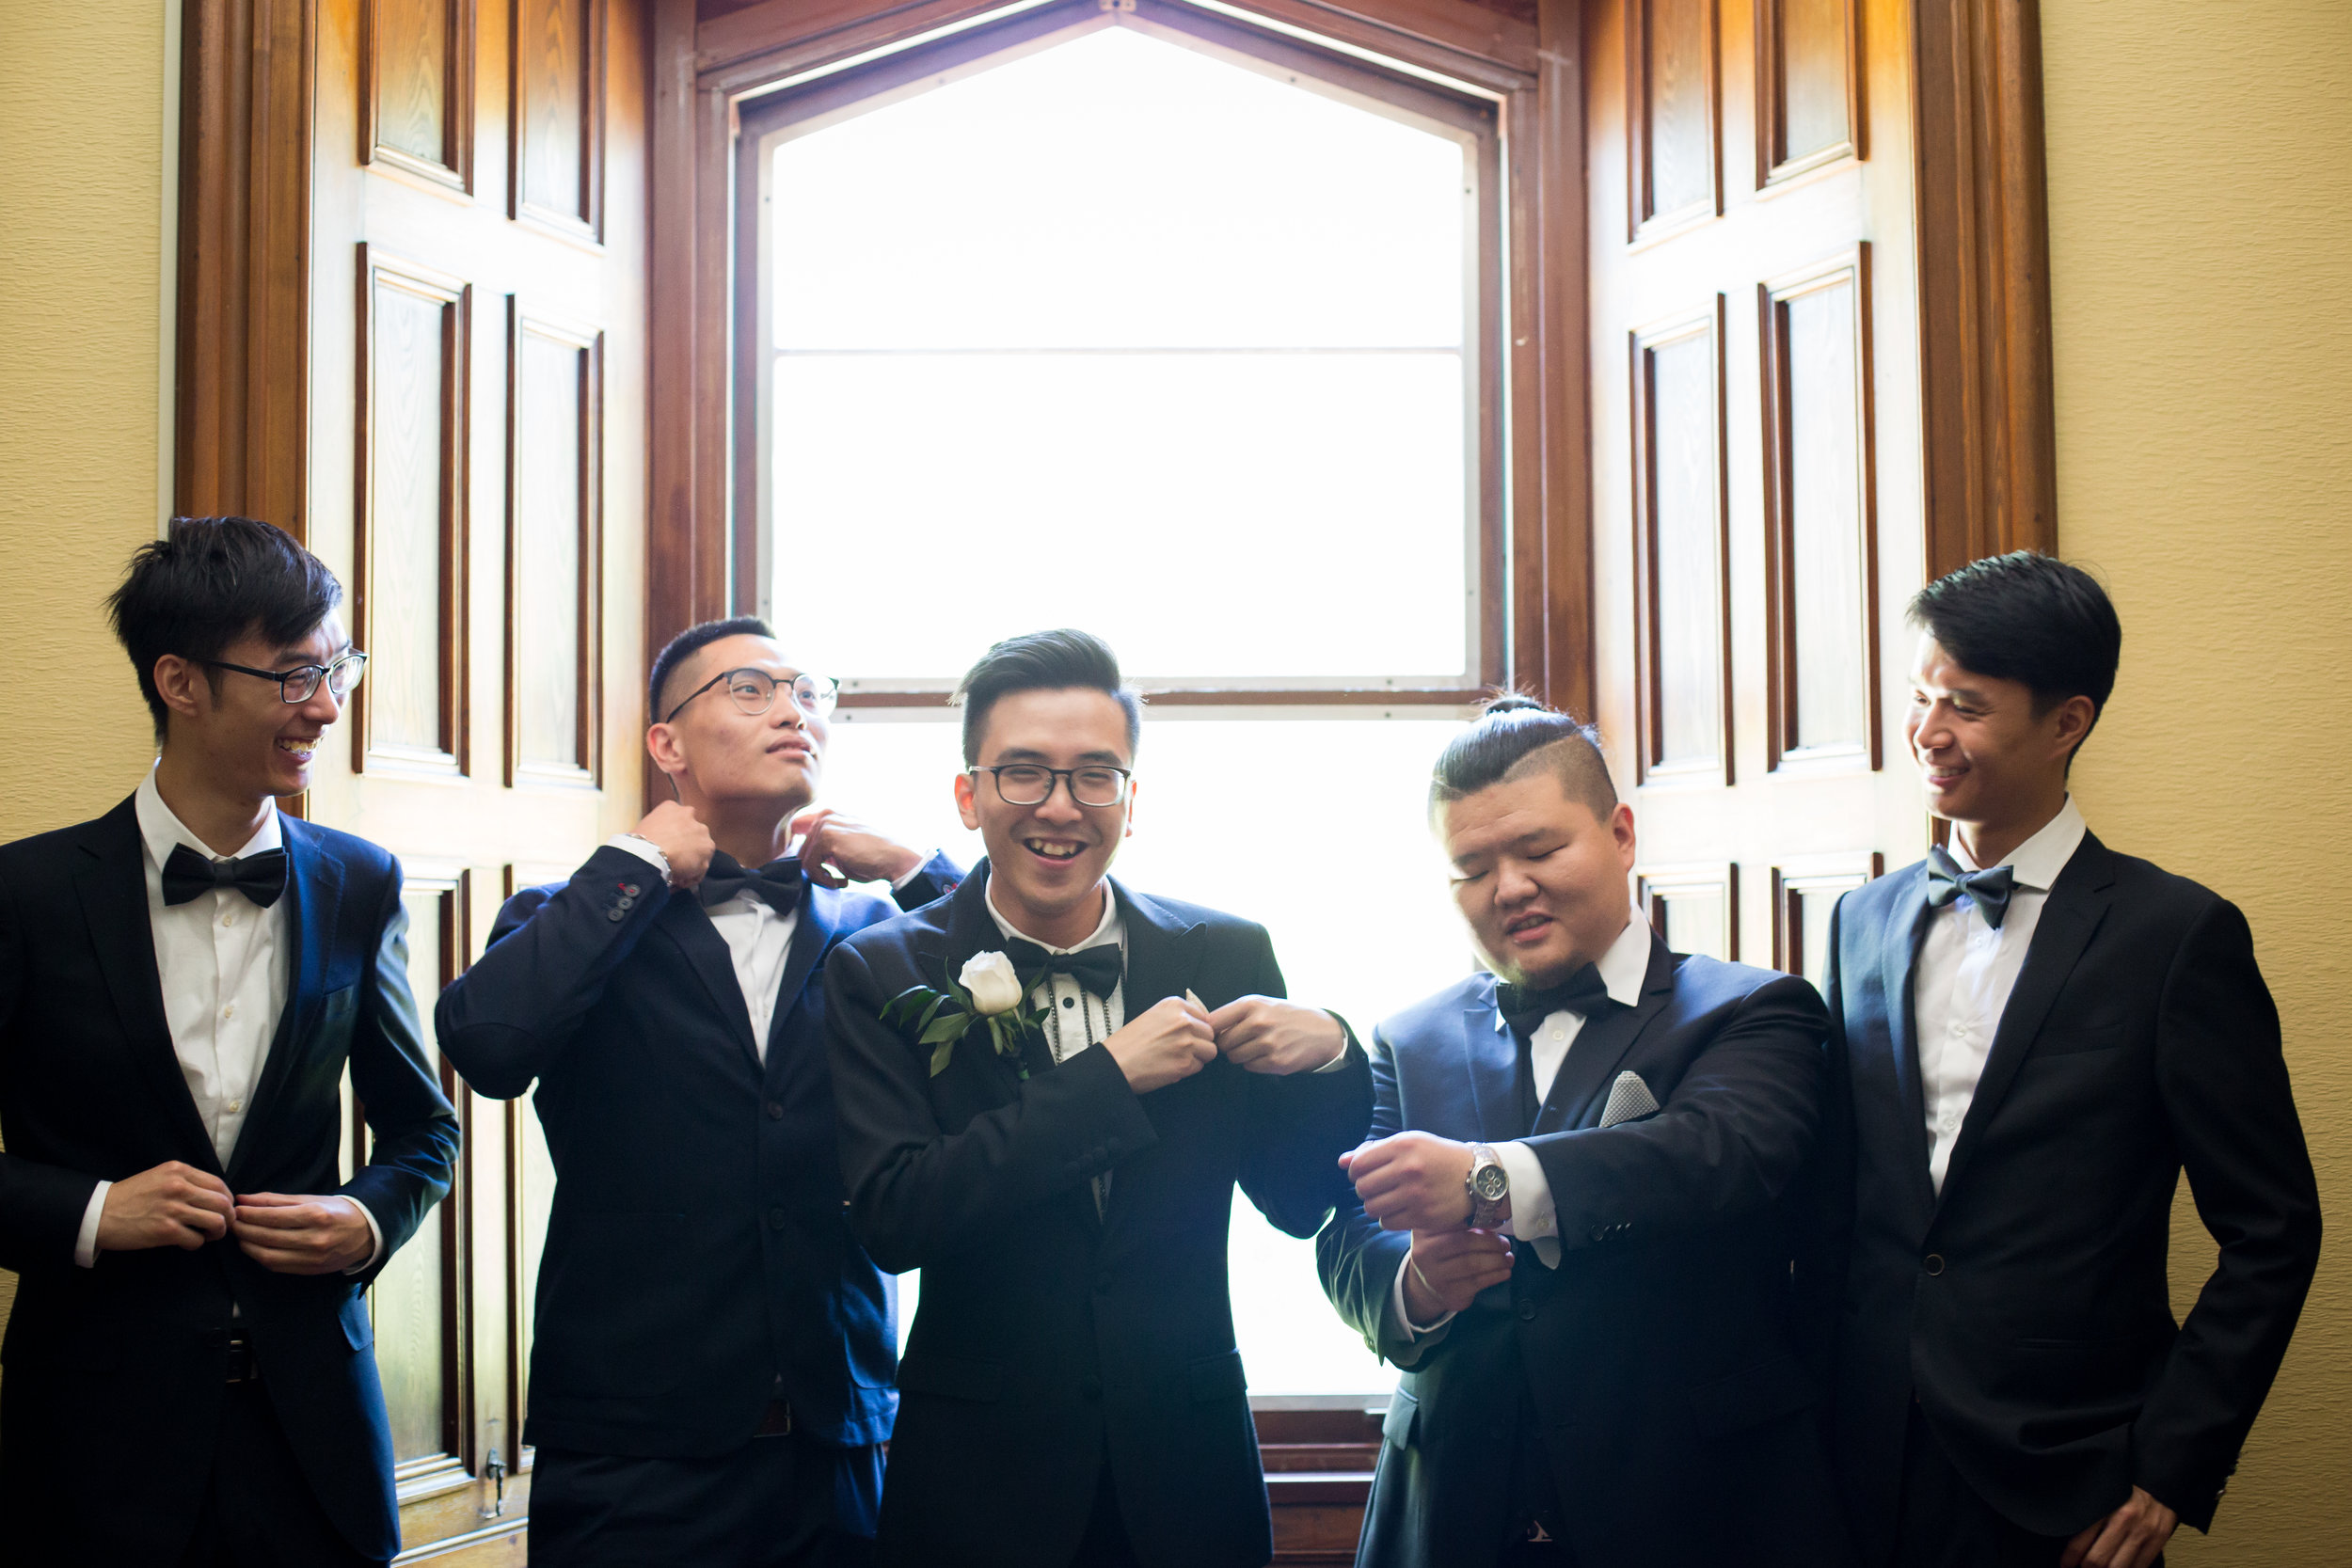 Copy of The groomsmen